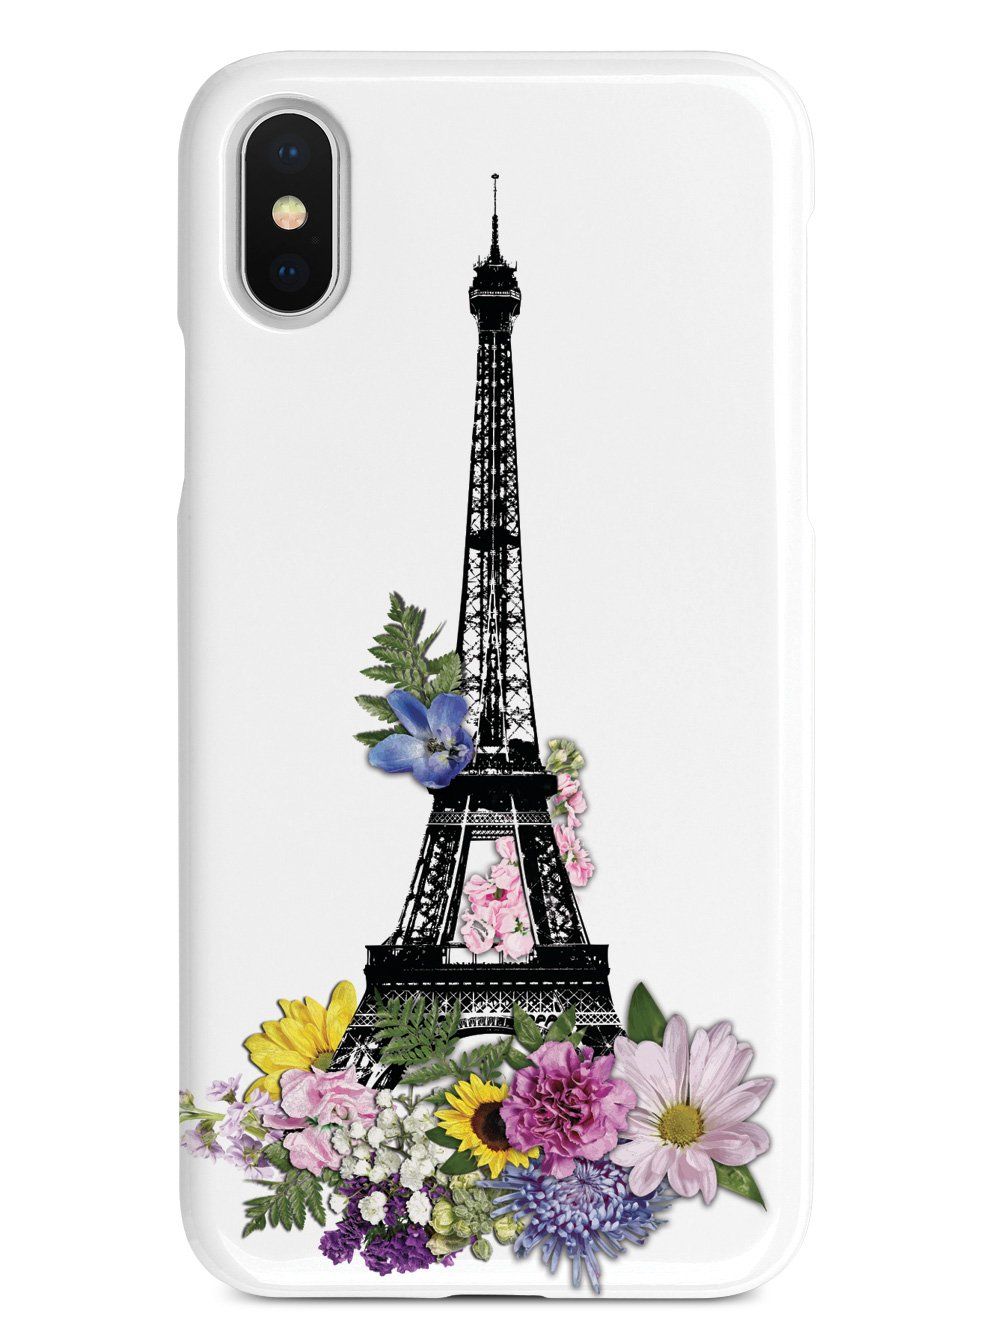 1004x1339 Eiffel Tower Drawing And Flowers